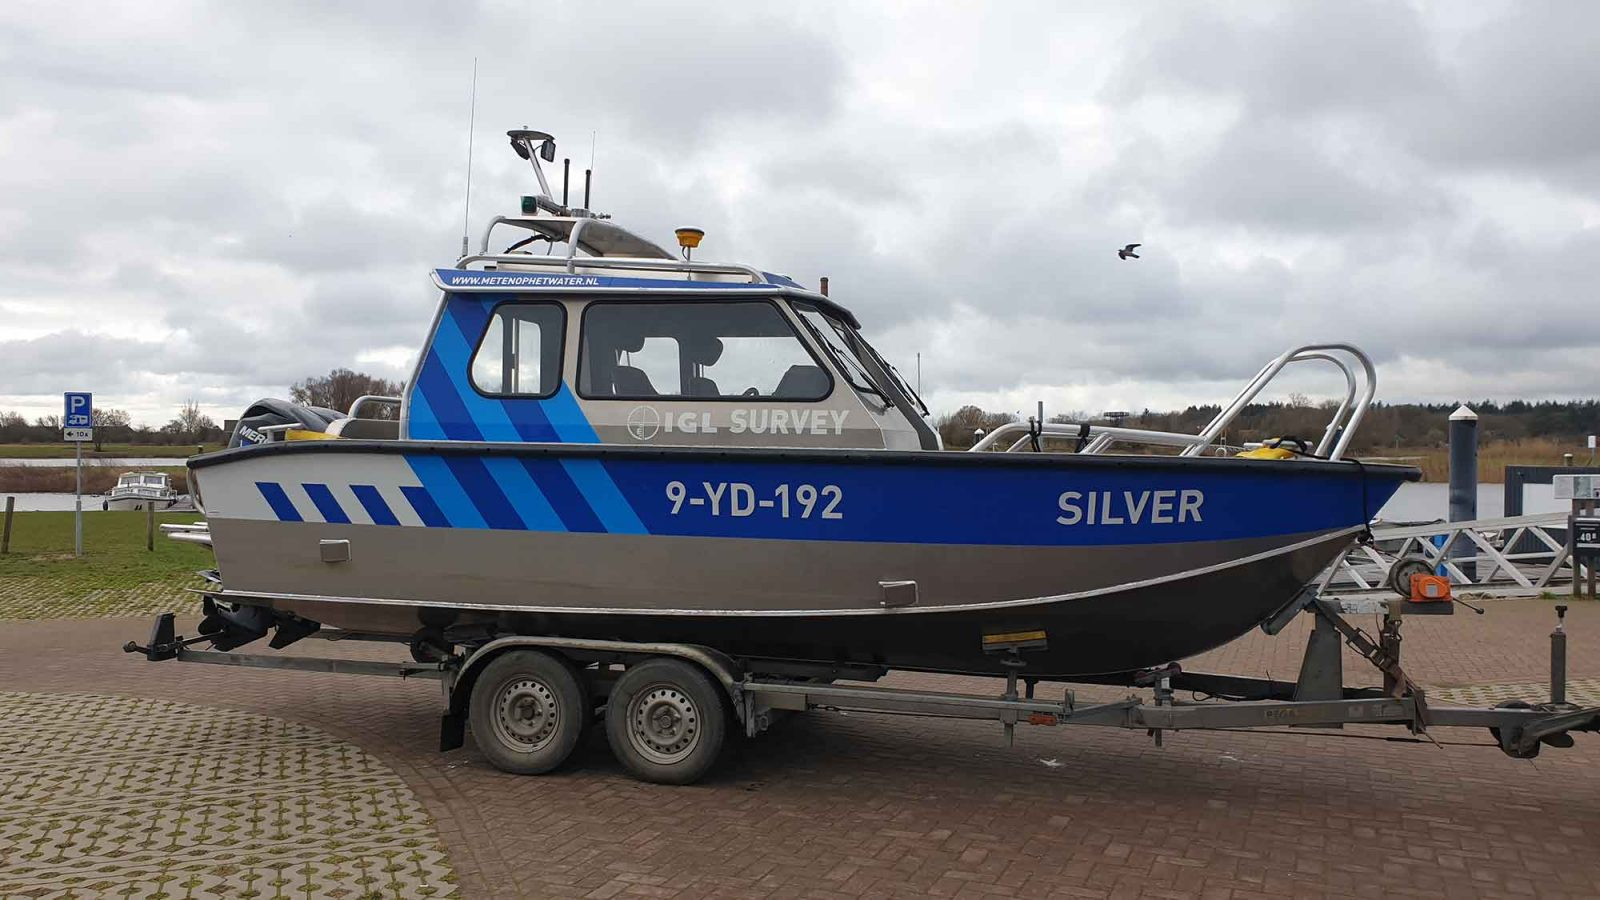 Meetboot Silver